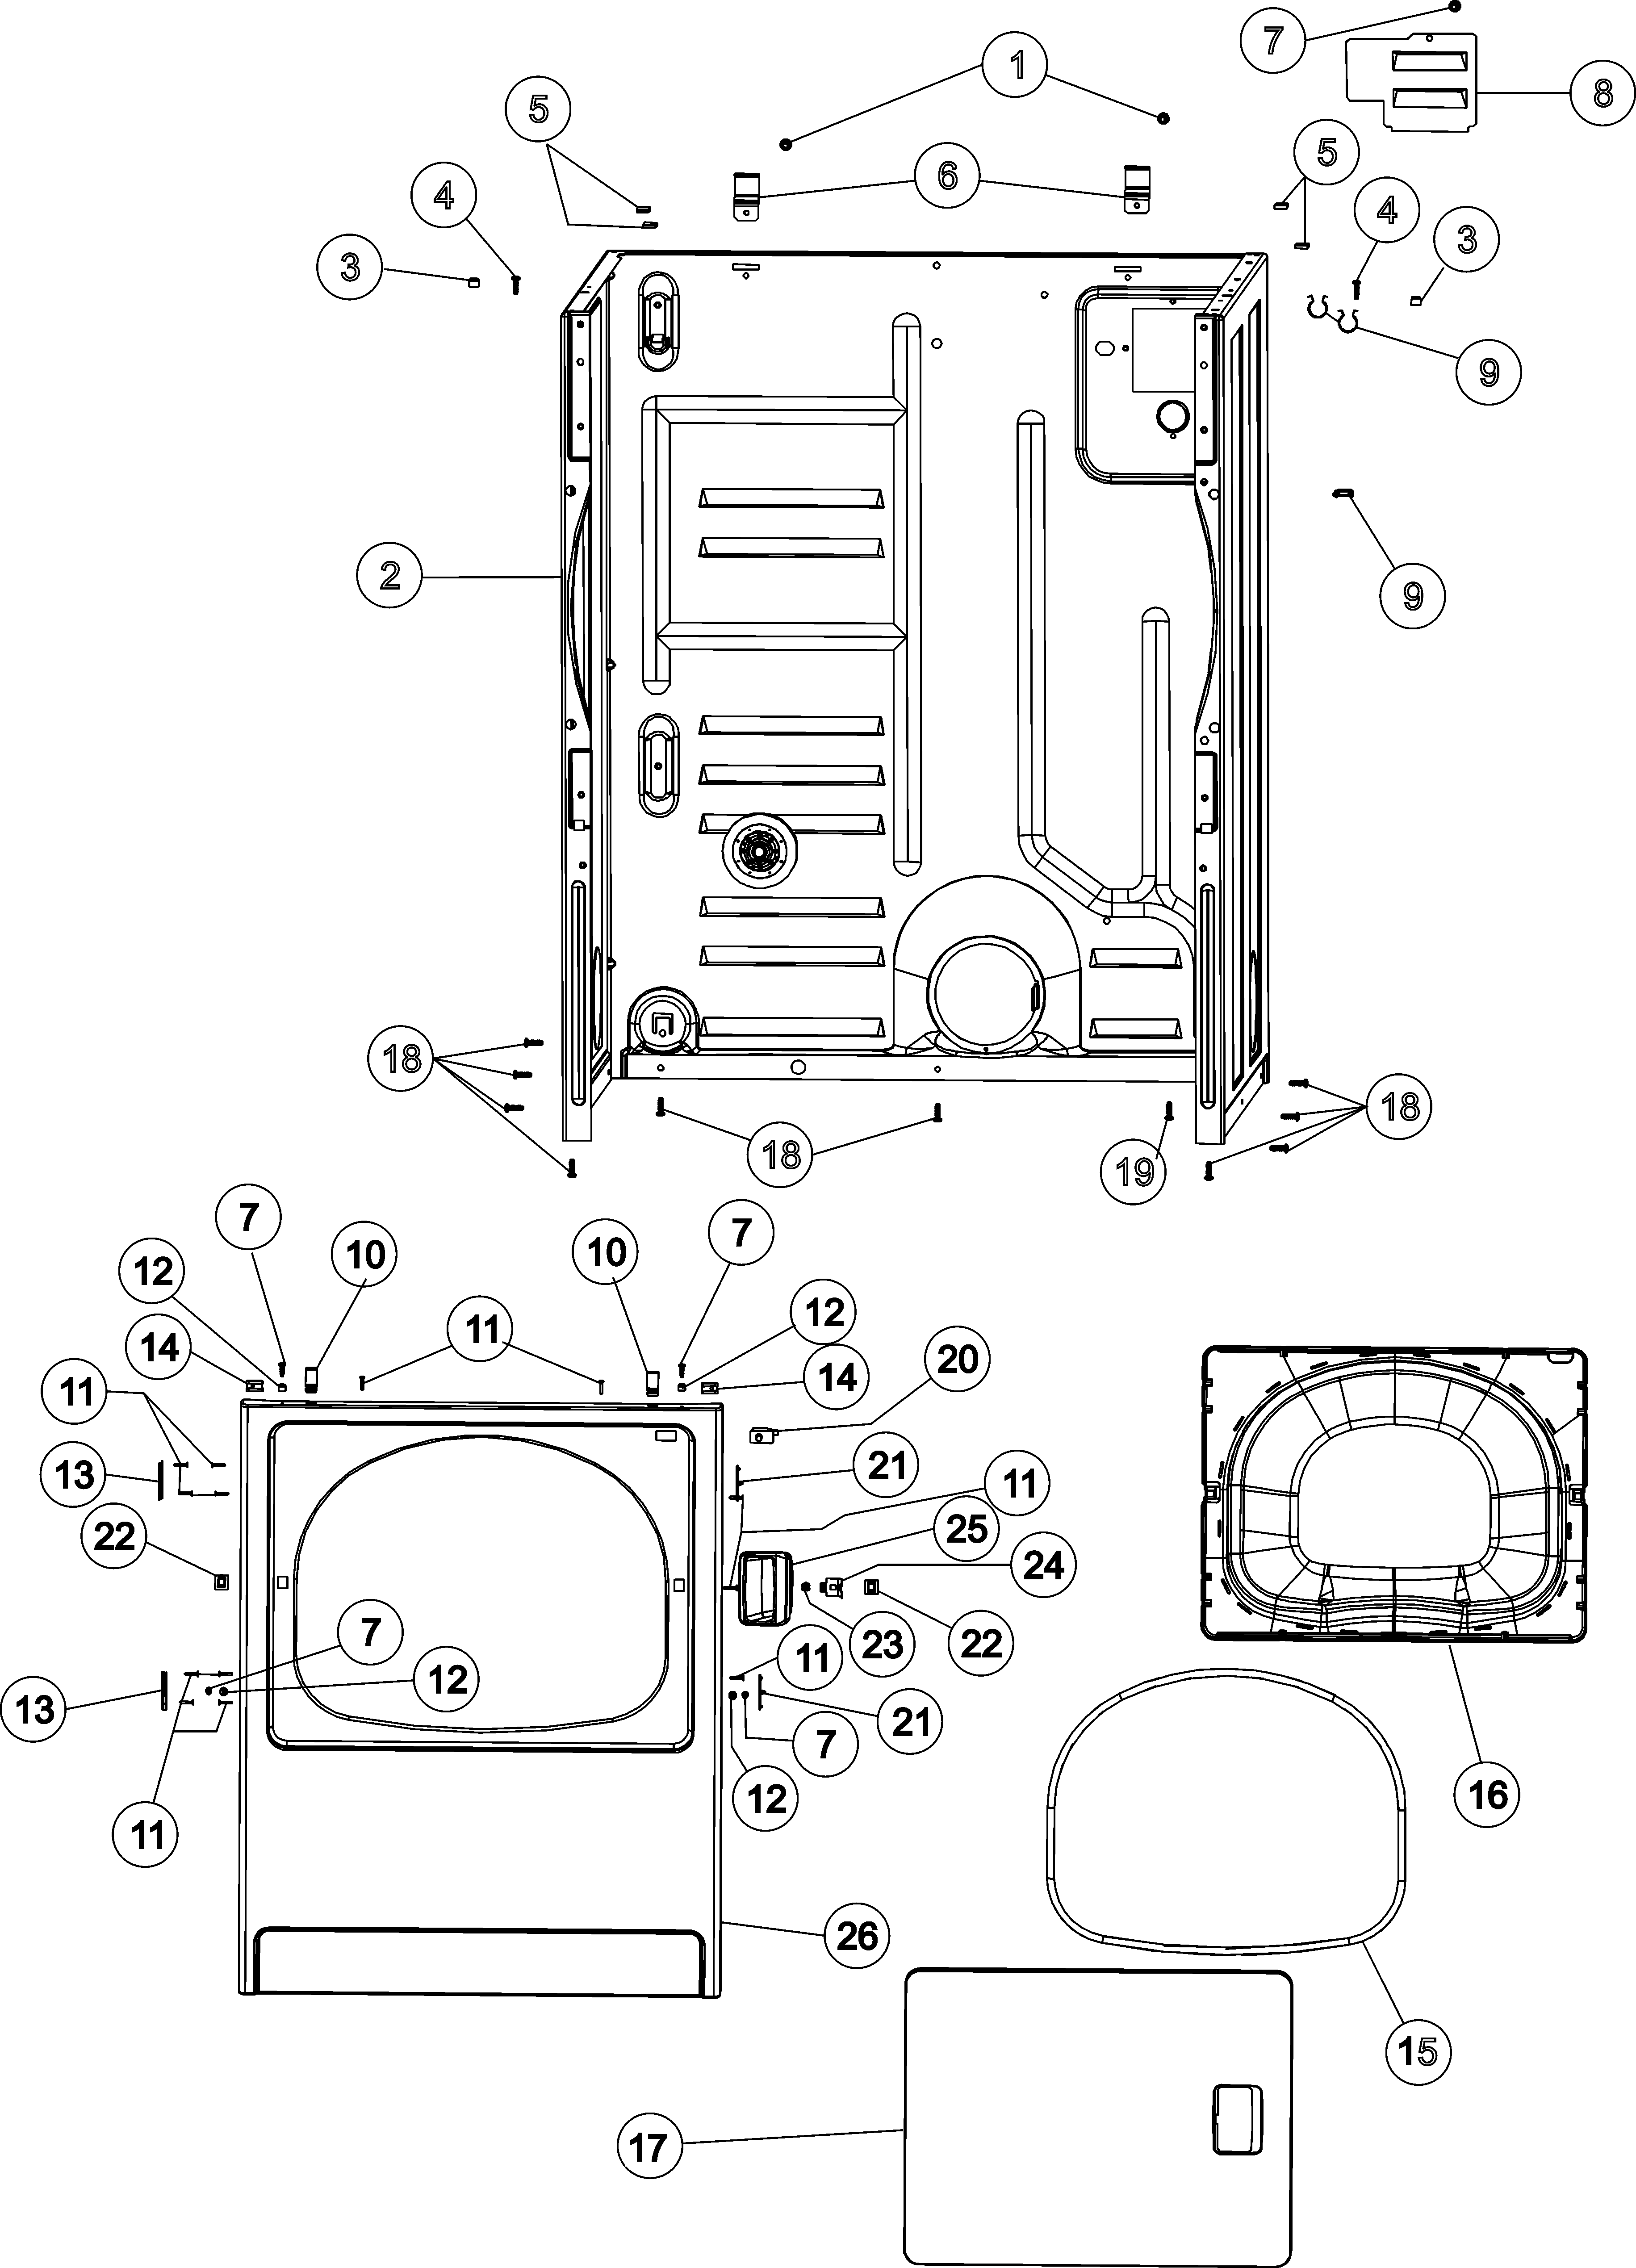 cabinet diagram and parts list for maytag dryerparts model wiring diagrams second [ 3663 x 5078 Pixel ]